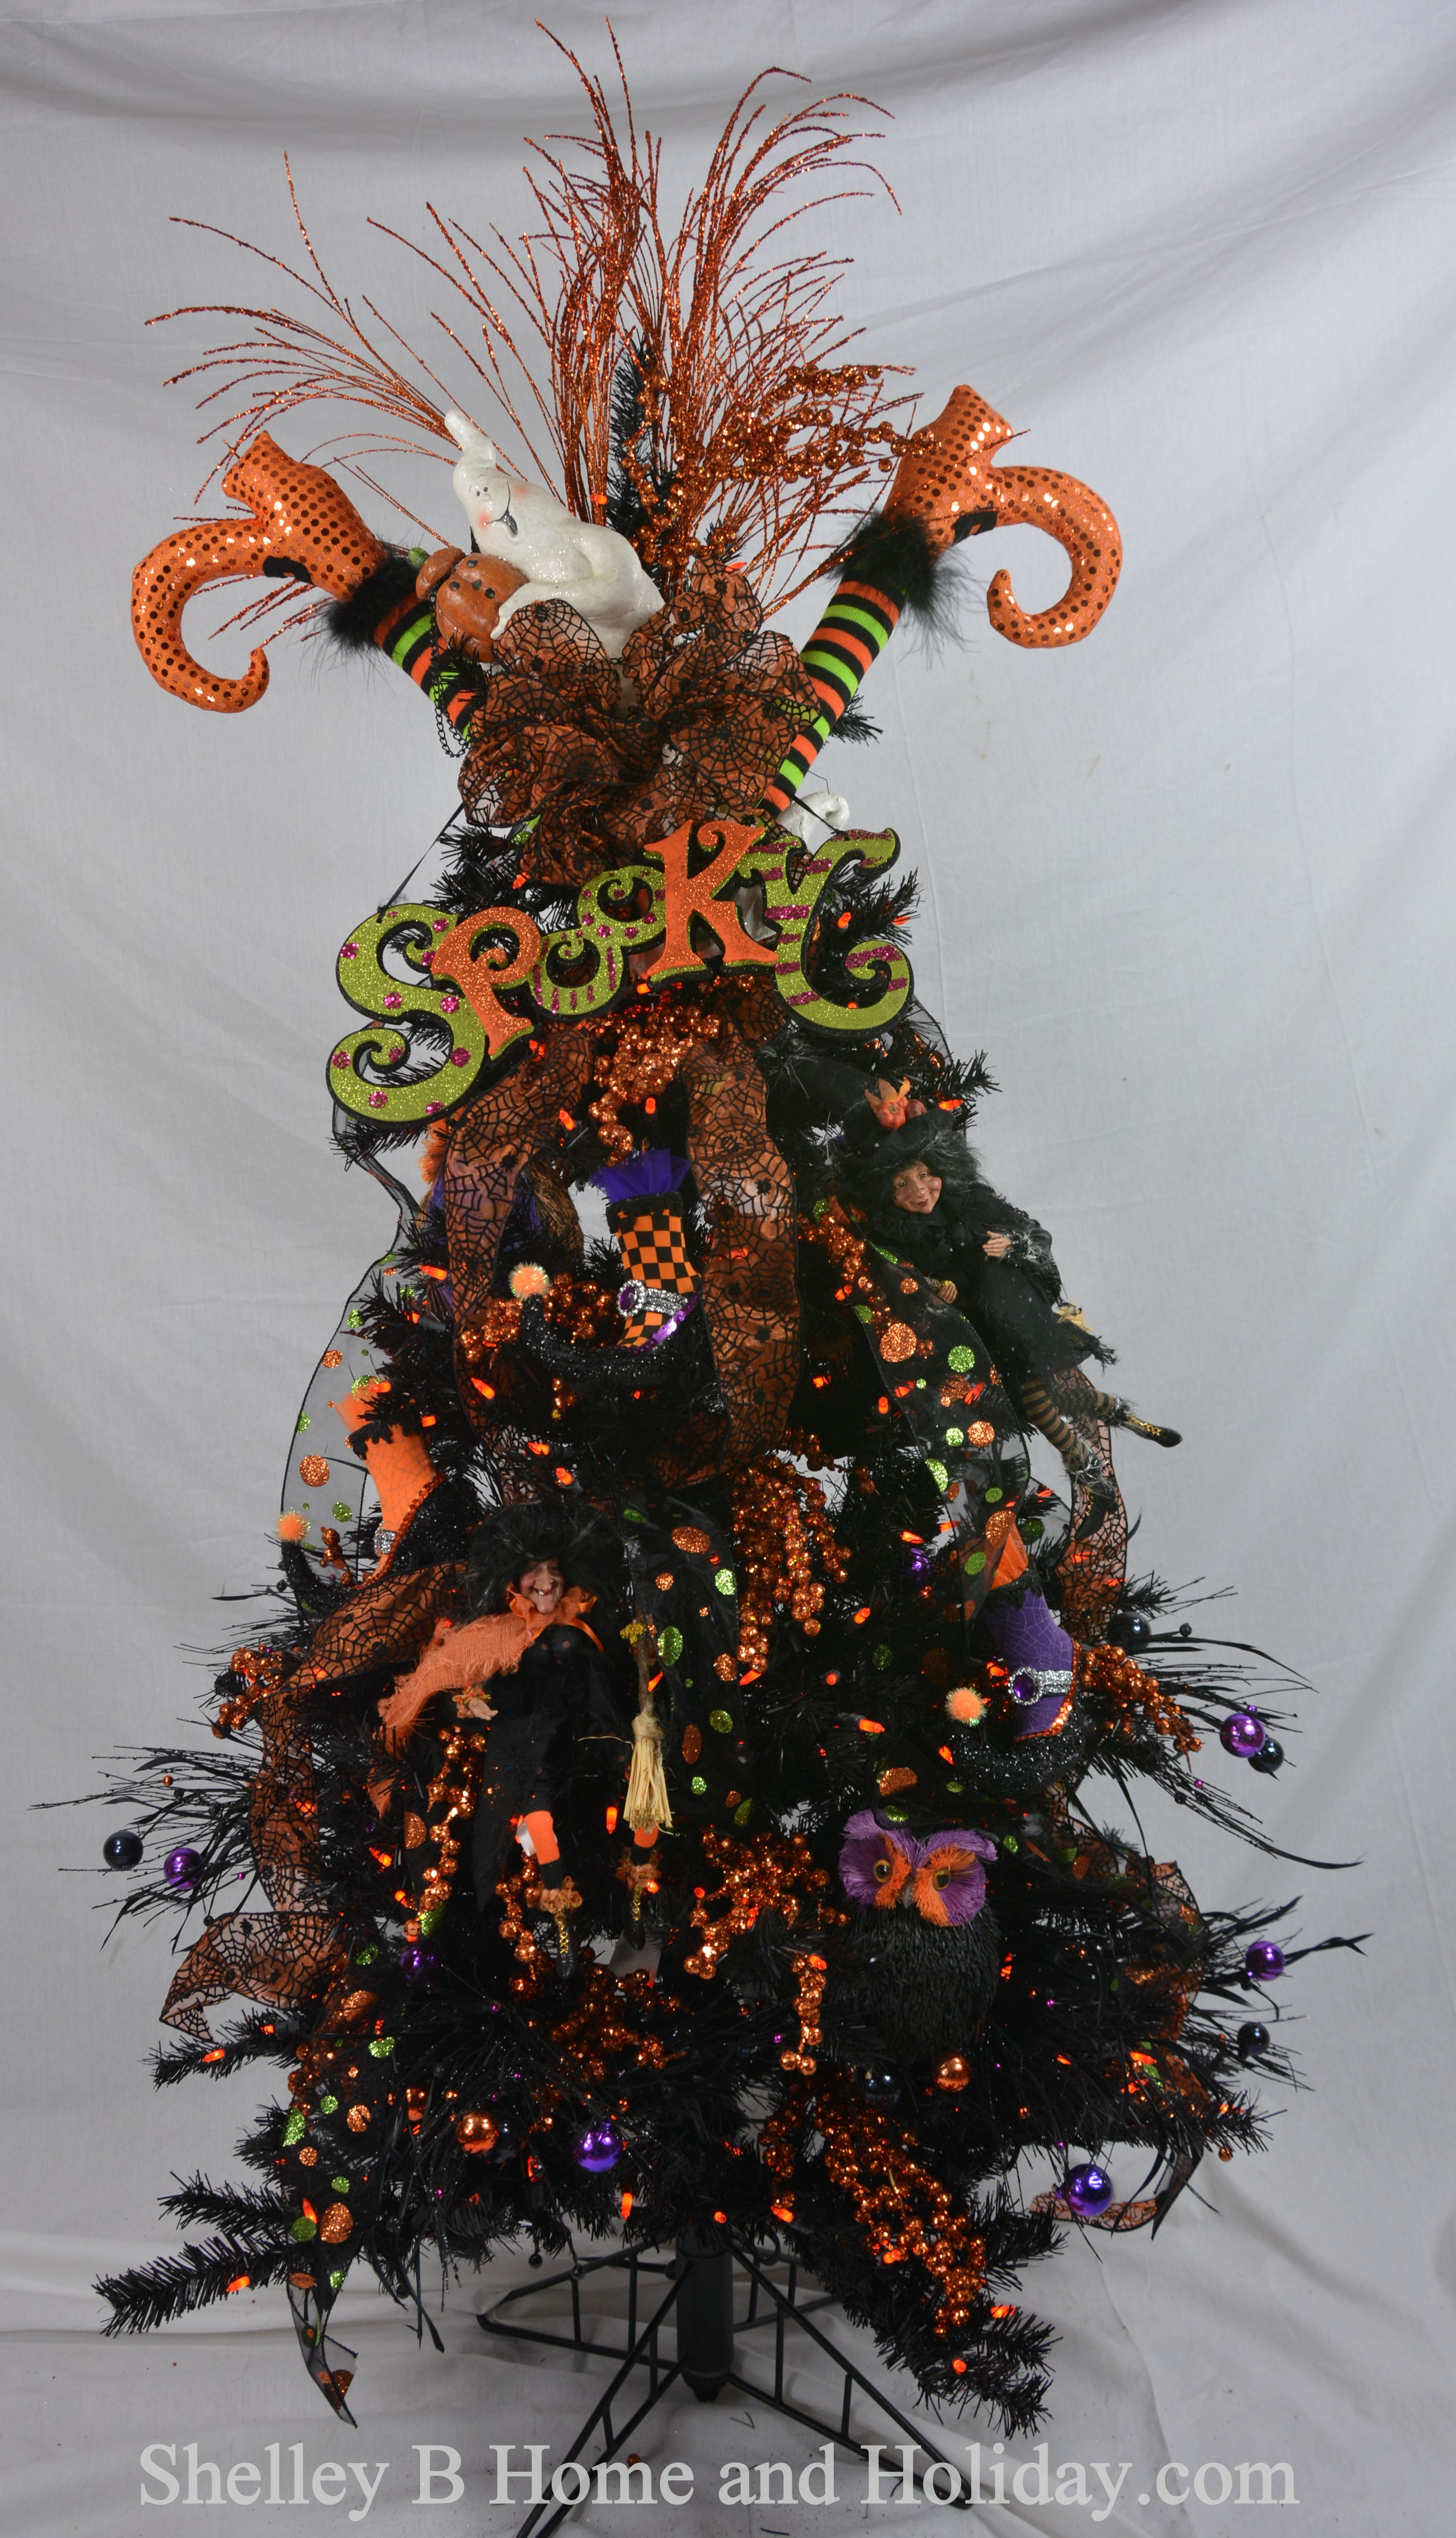 SHELLEY B GHOST TOP HALLOWEEN TREE Decorate a tree for